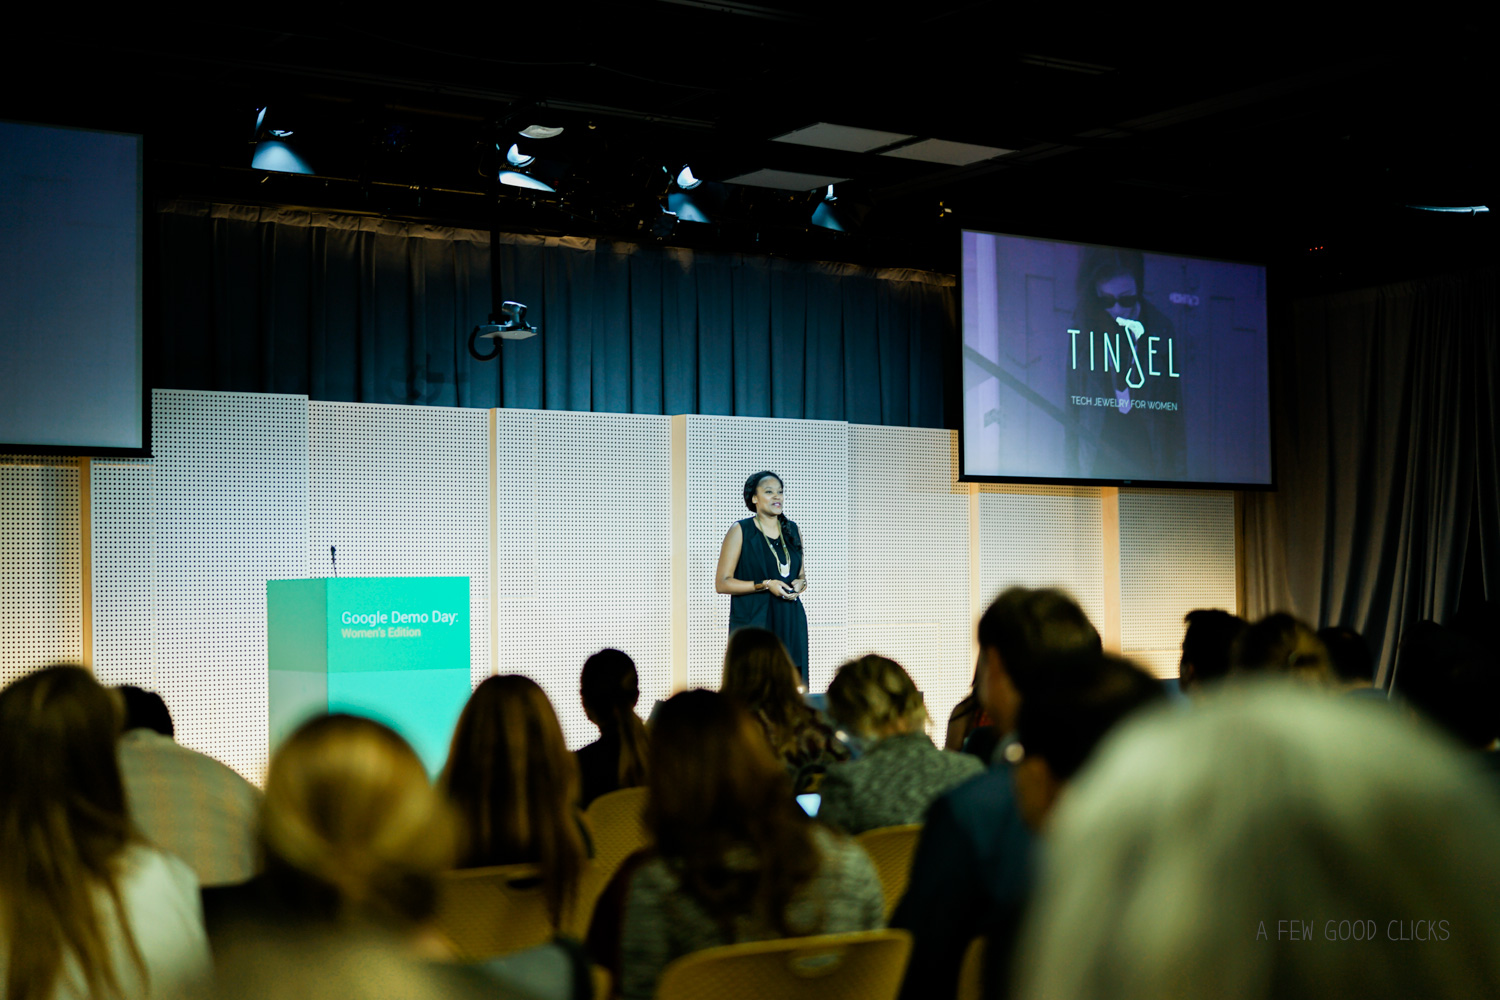 Photograph of Tinsel founder Aniyia Williams at Google Demo Day